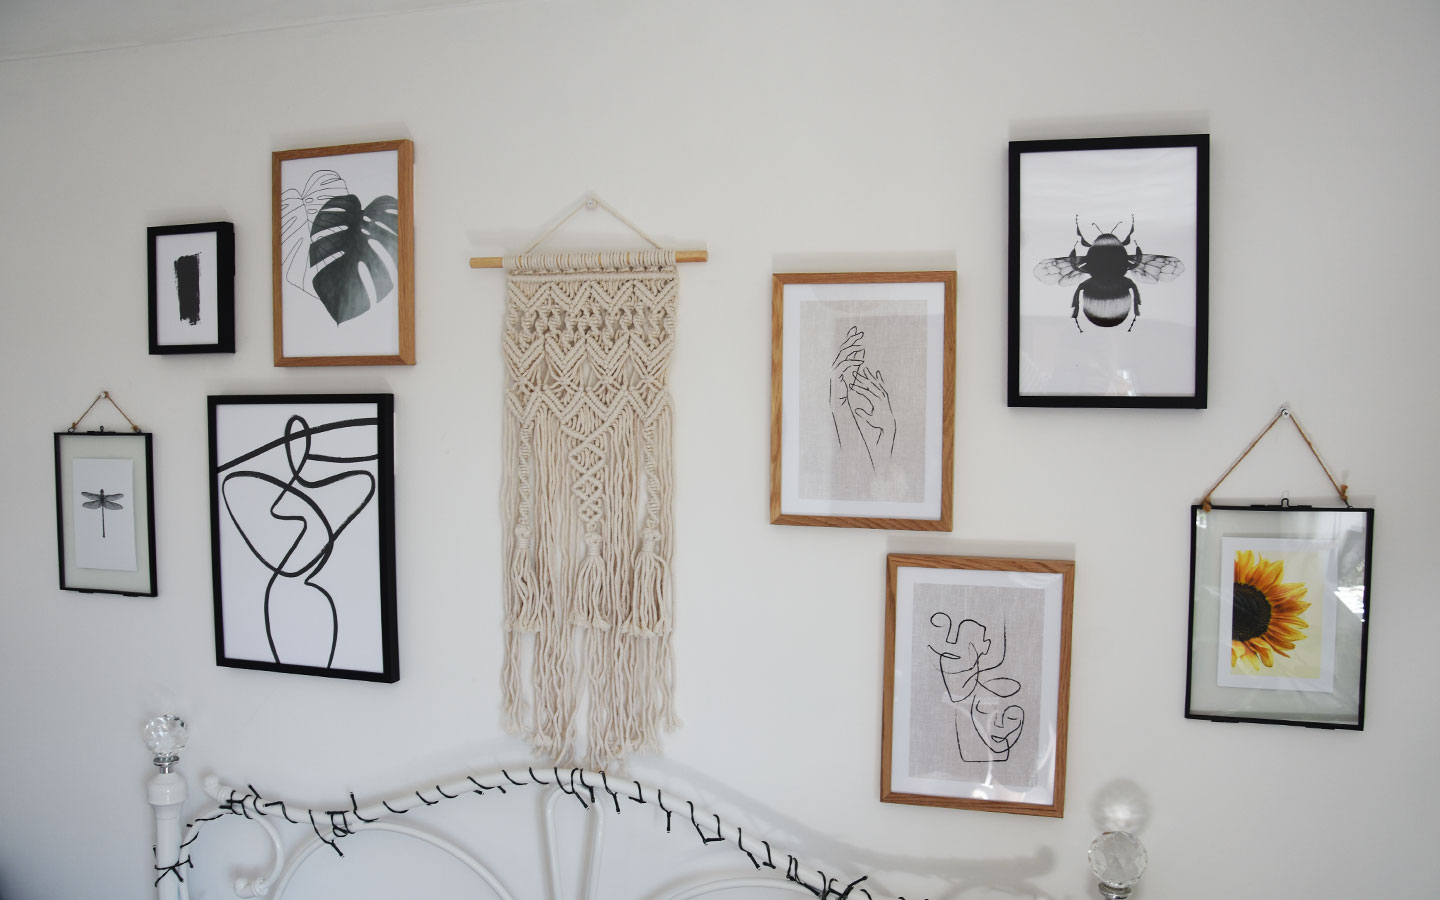 how to create a gallery wall in your bedroom using prints from desenio by melissa carne